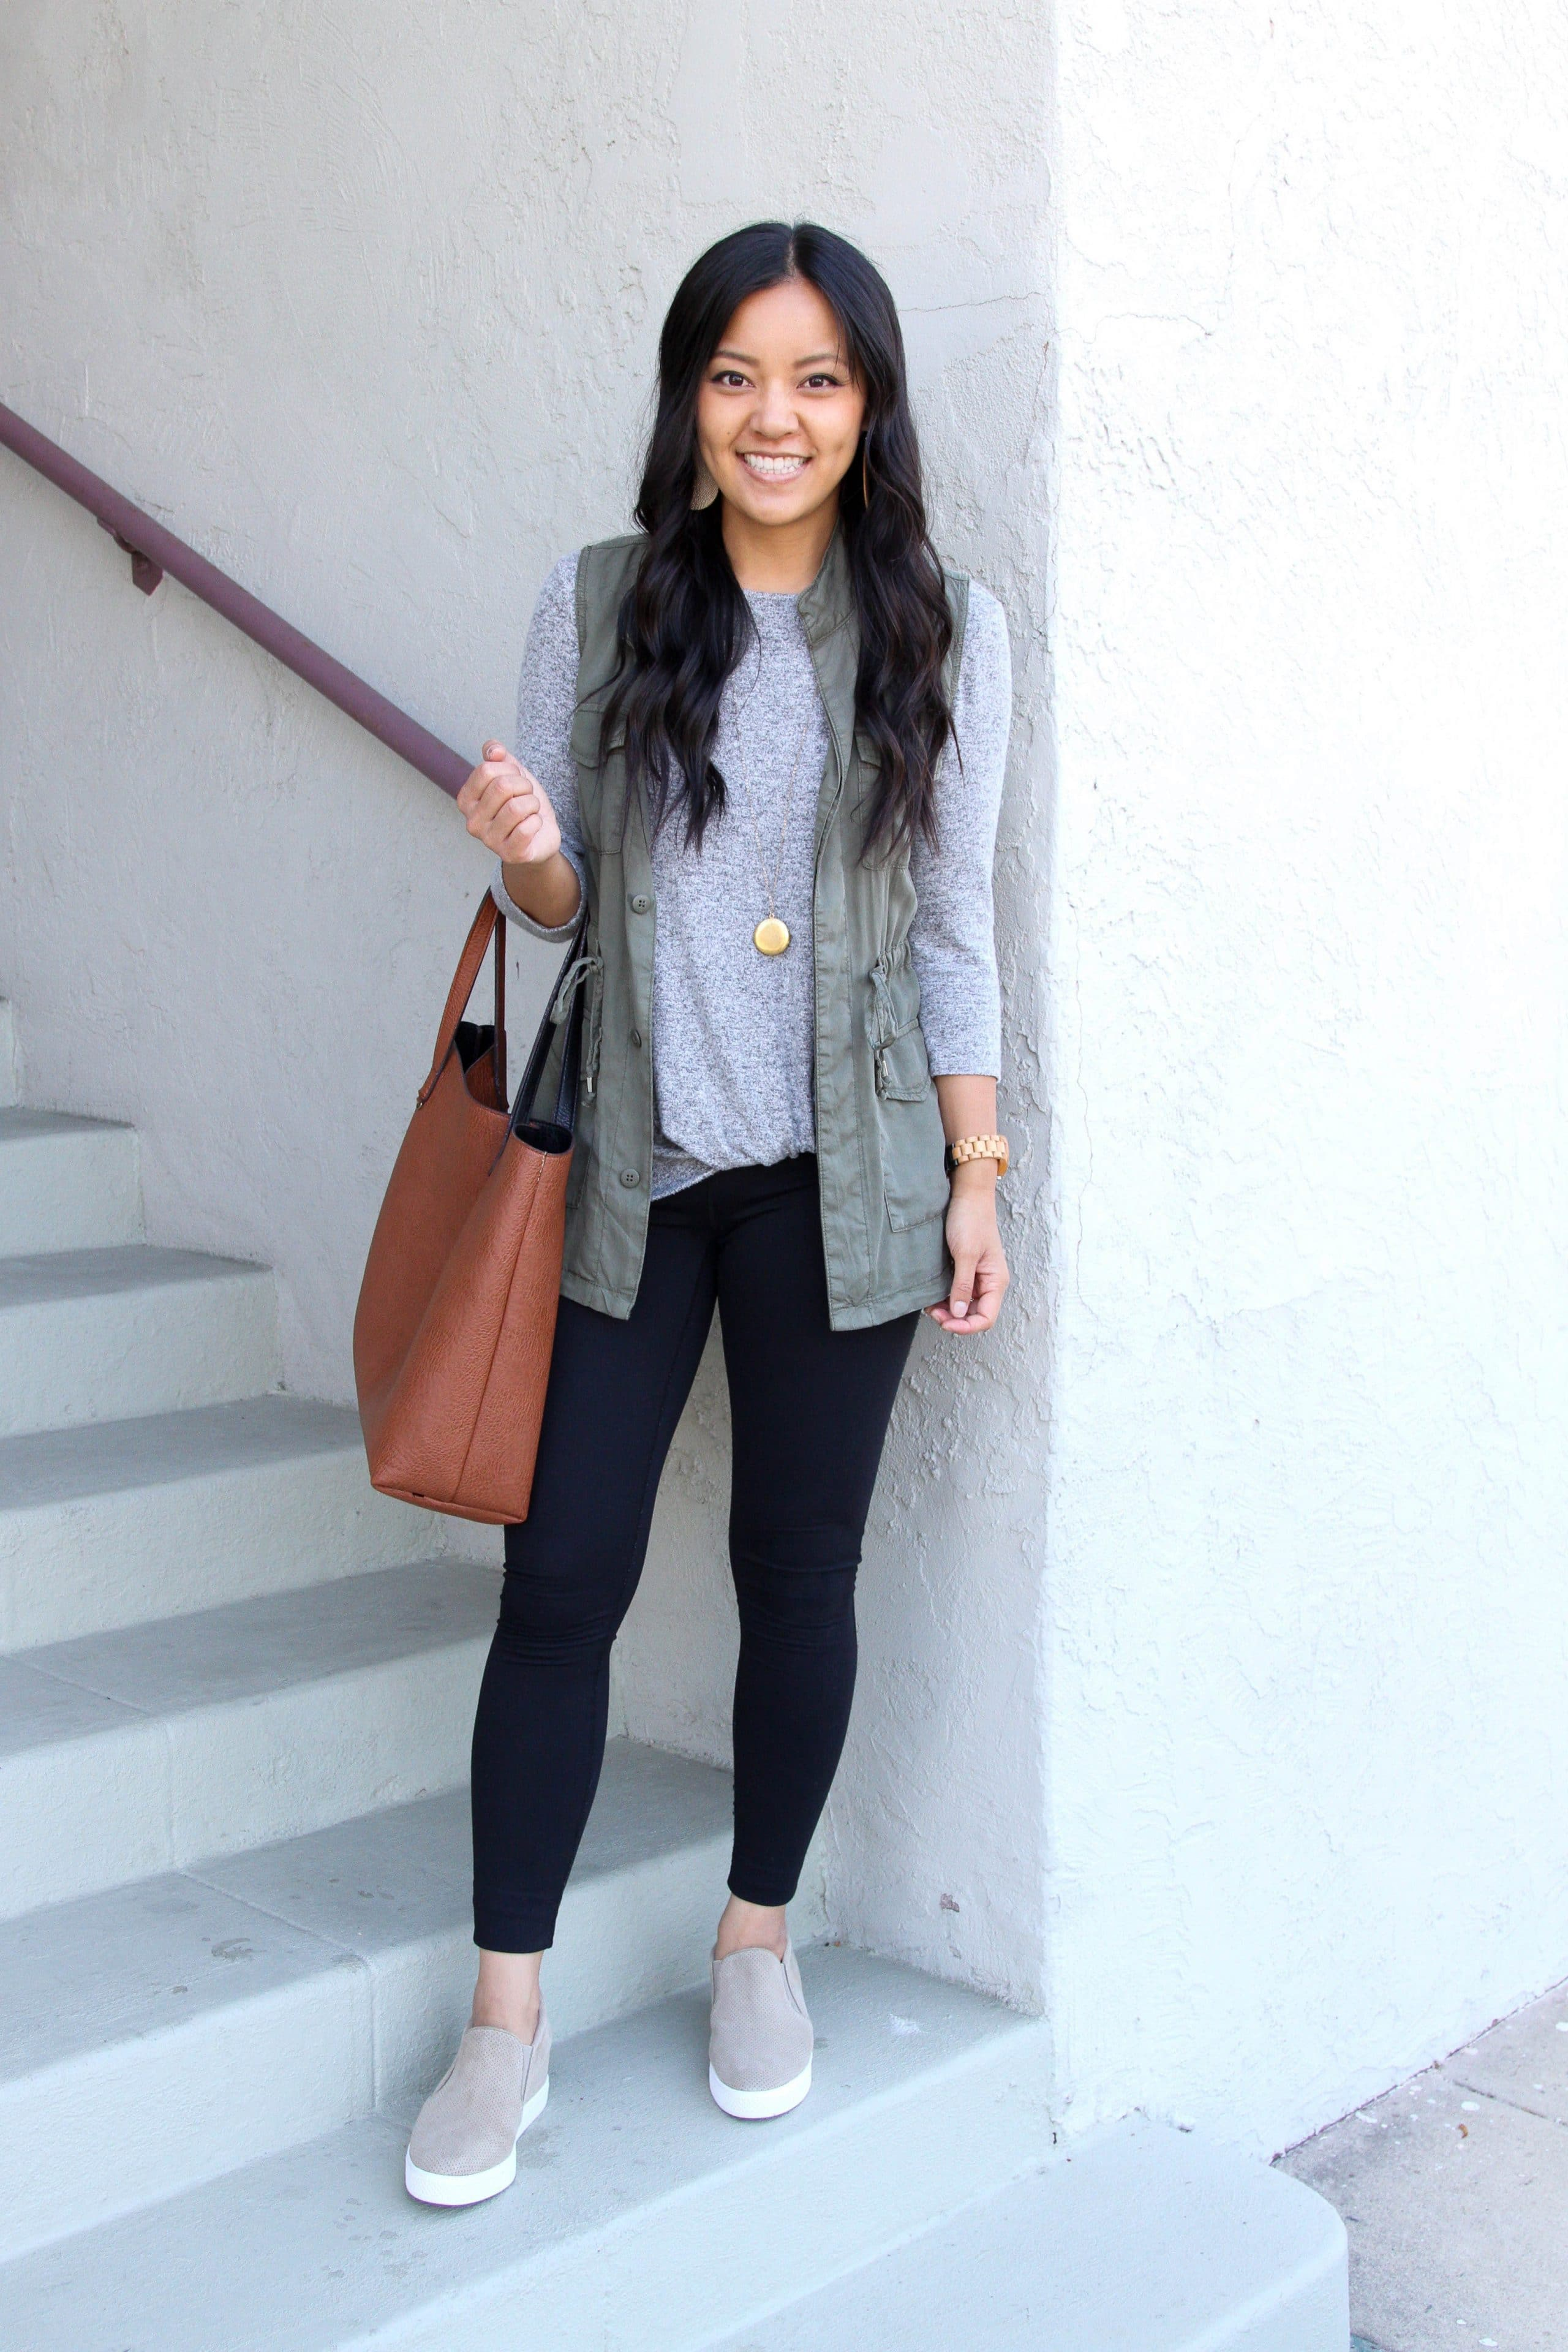 grey twist shirt + olive utility vest + black leggings + taupe sneakers + cognac tote + pendant necklace